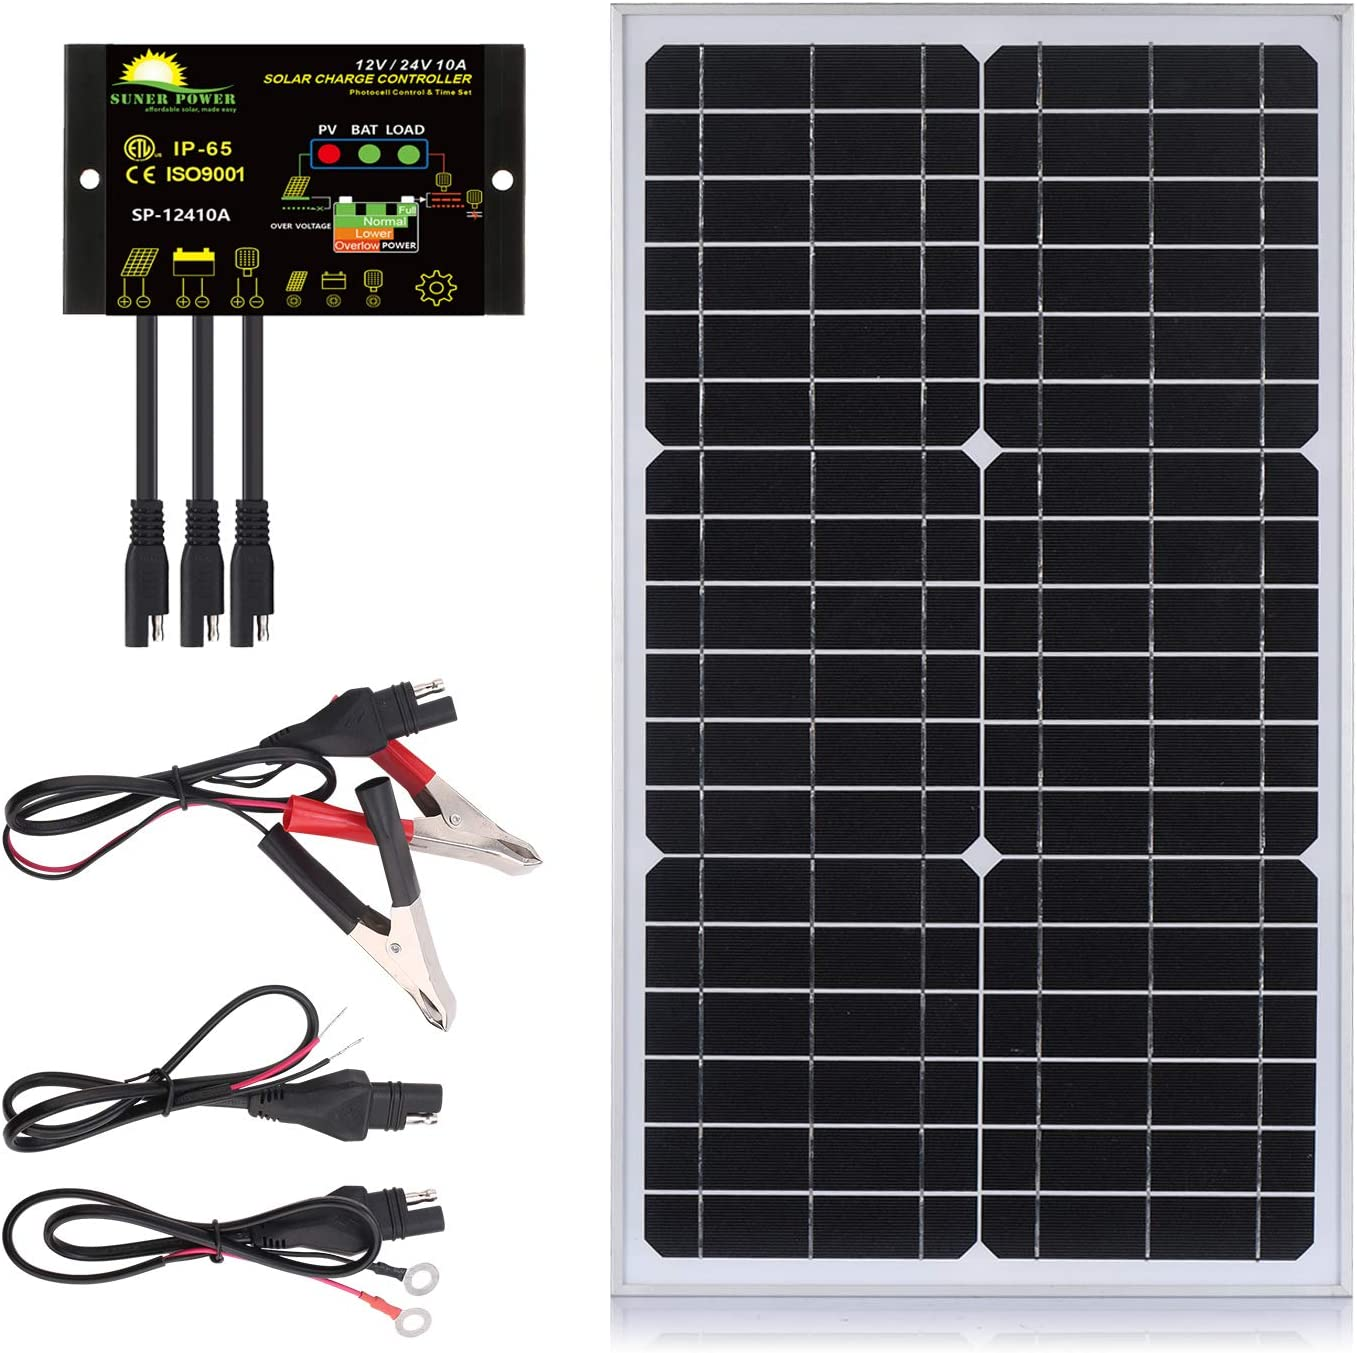 30 Watts Mono Crystalline 12V Off Grid Solar Panel Kit - Waterproof 30W Solar Panel + Photocell 10A Solar Charge Controller with Work Time Setting + SAE Connection Cable Kits